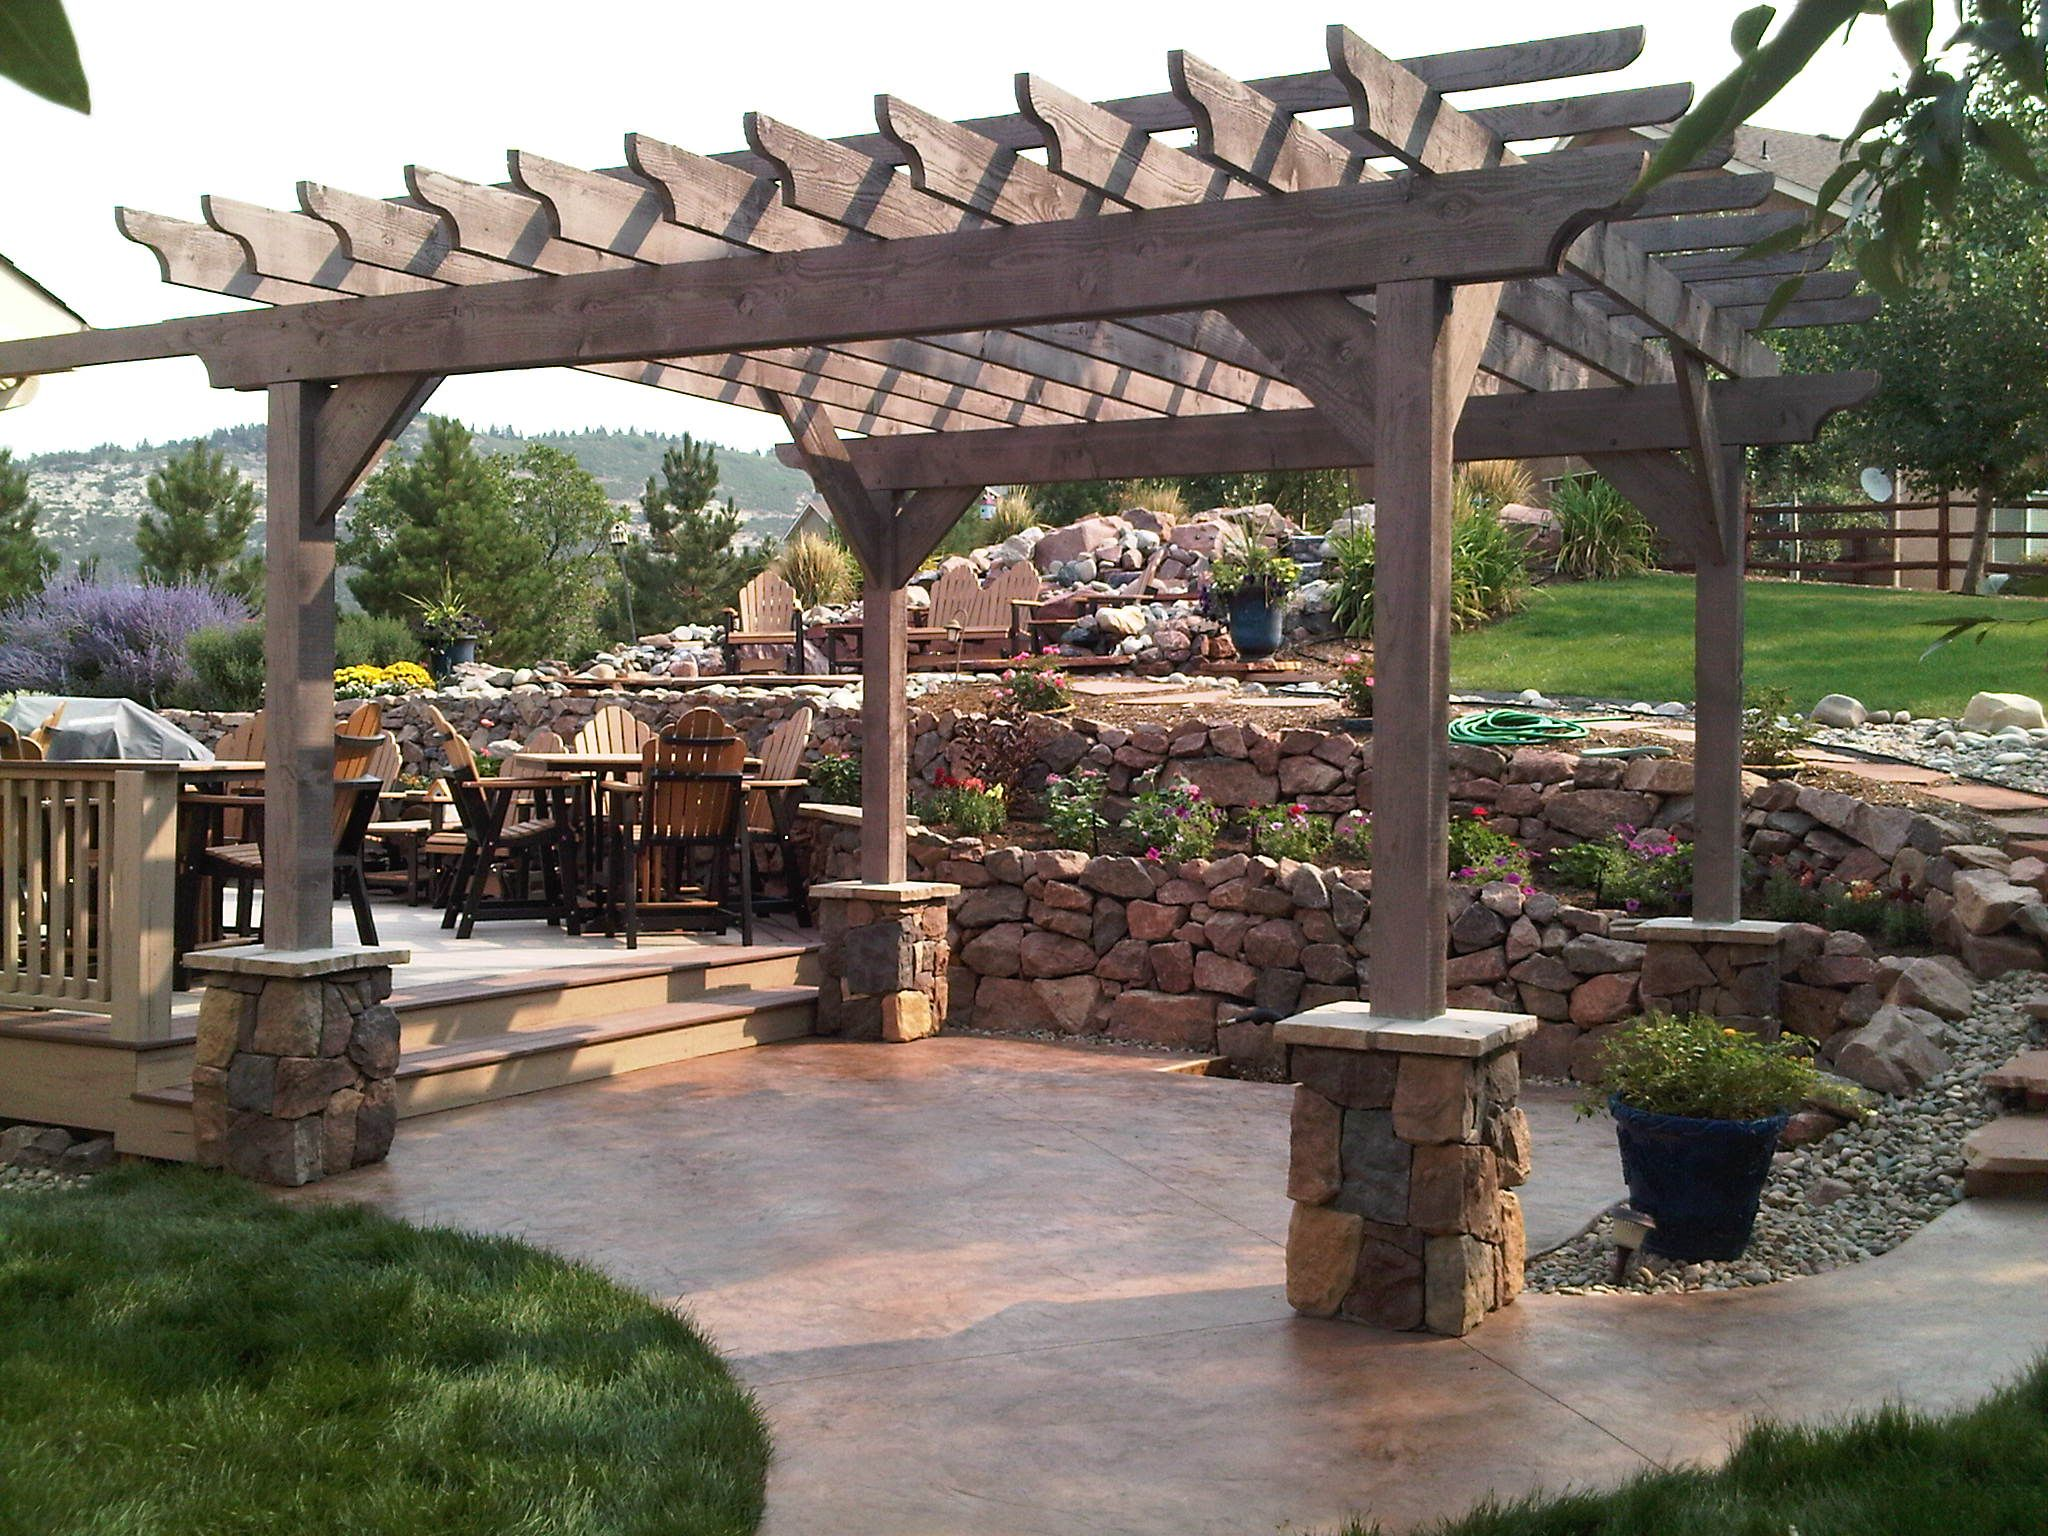 Rough sawn timber Pergola stone piers rock retaining wall stamped concrete patio